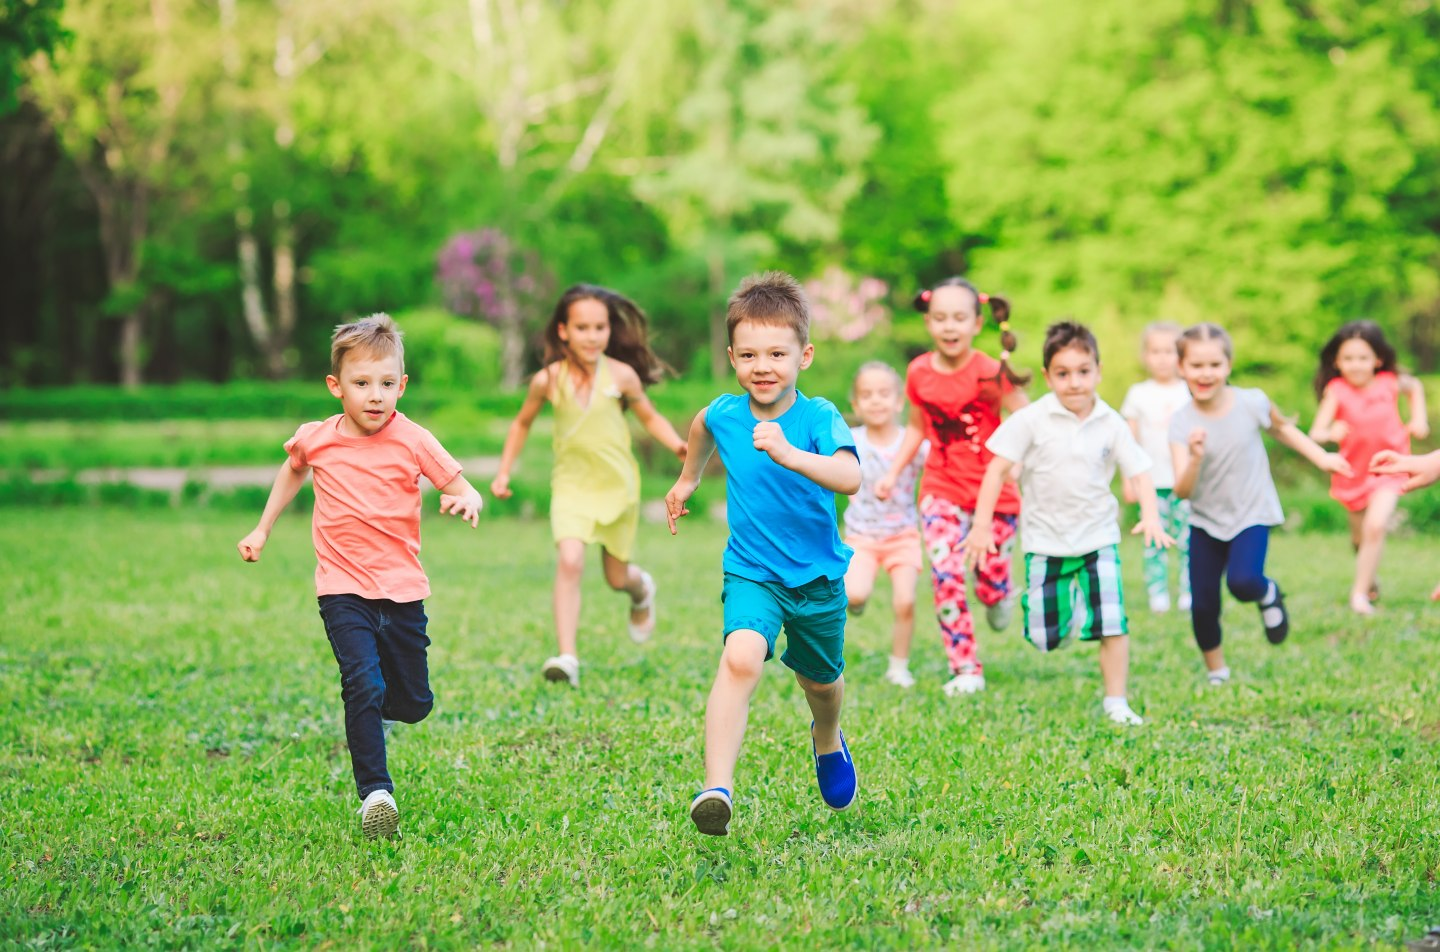 Many different kids, boys and girls running in the park on sunny